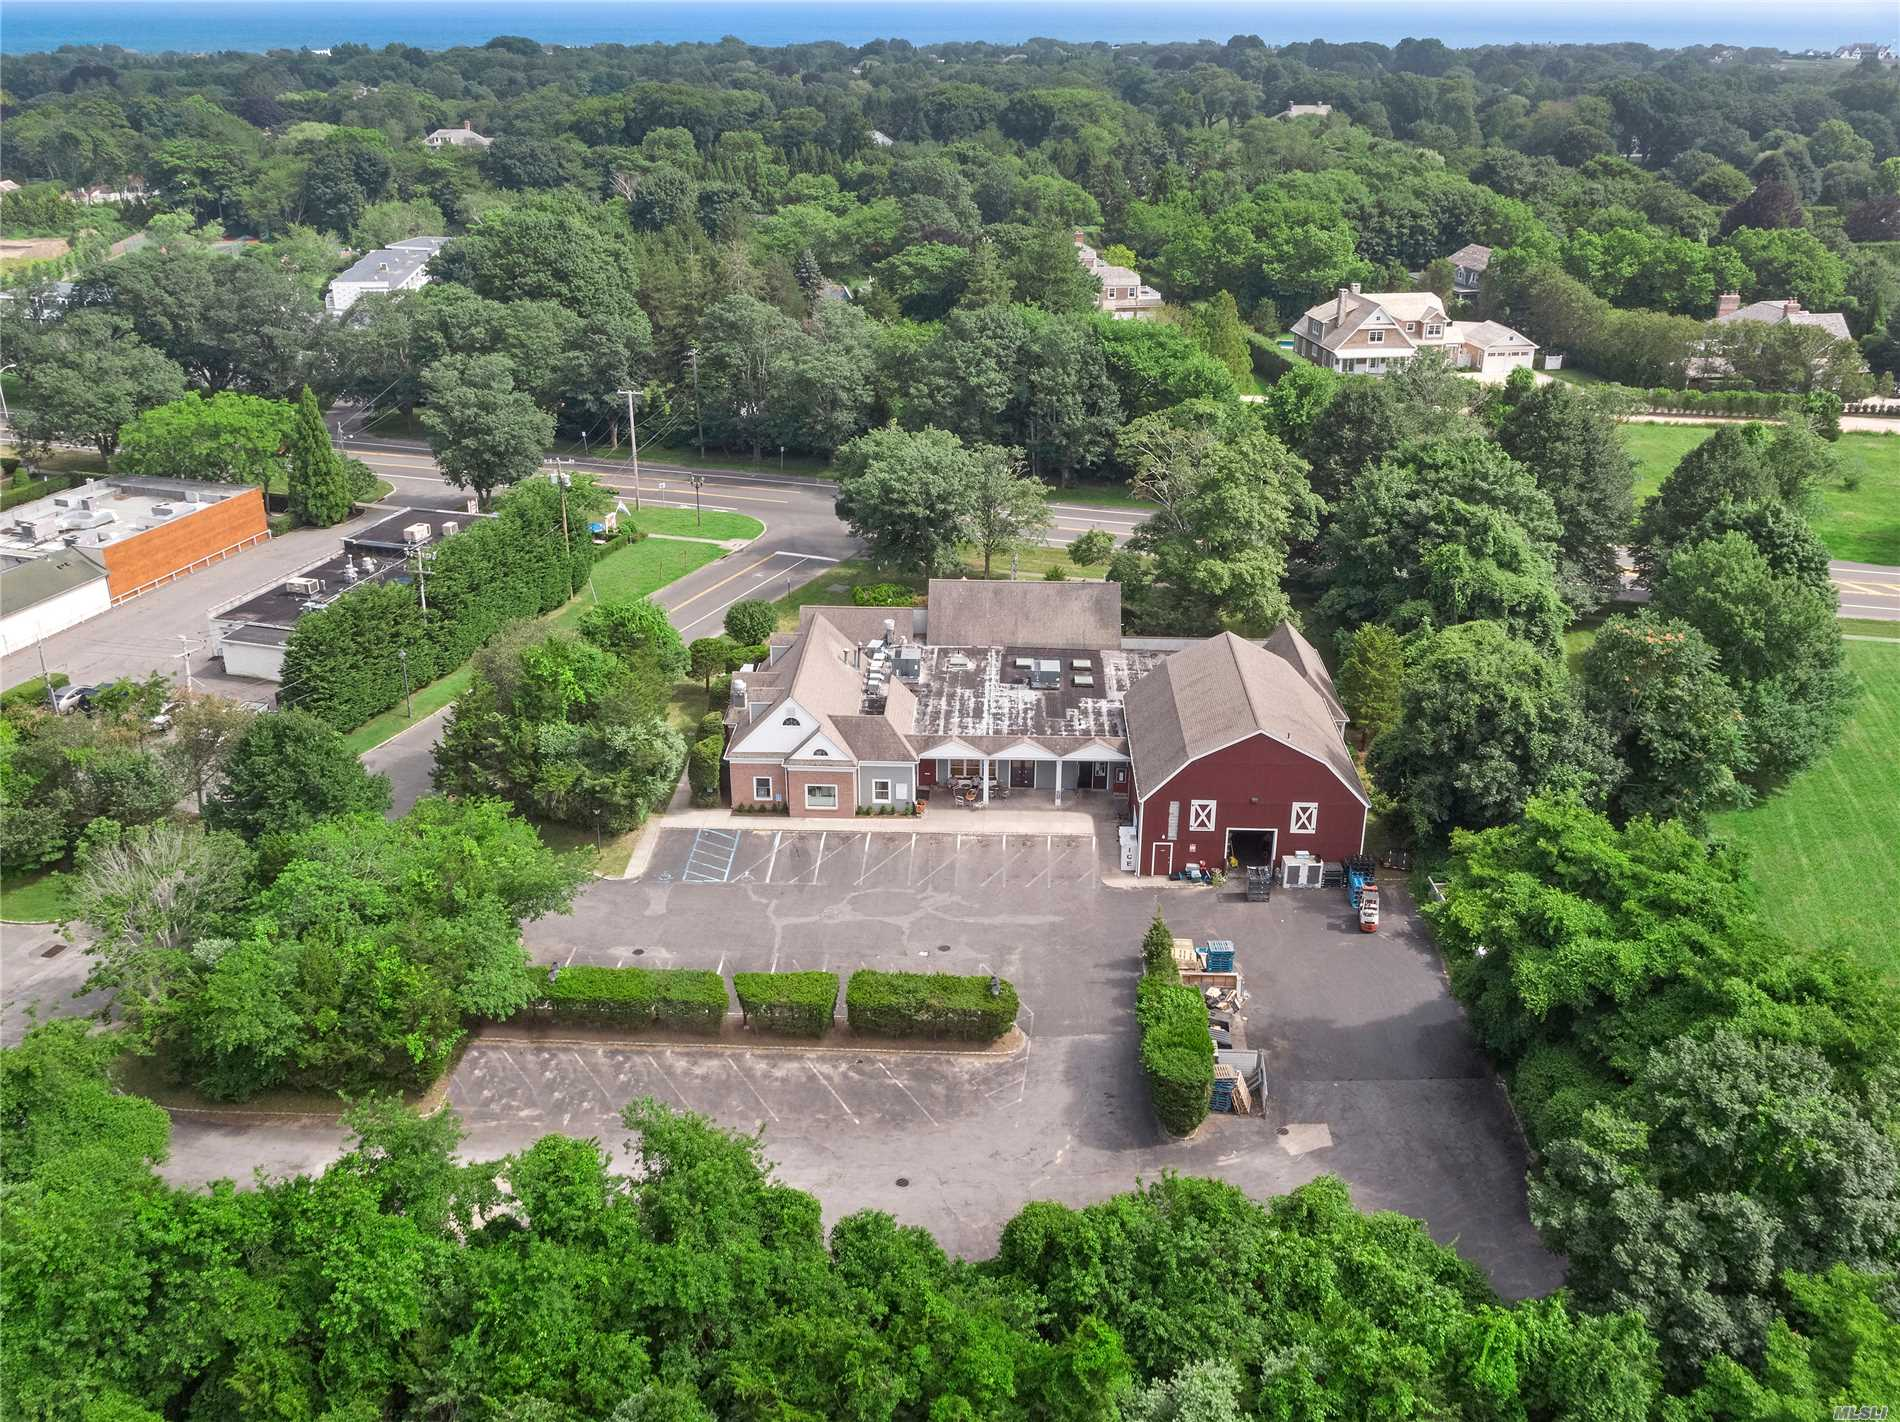 Located Just Outside East Hampton Village Off Montauk Highway Is This 10, 856 Sqft +/- Commercial Building. The Property Is In A High Trafficked Location On 1 Acre With 45 Parking Spots. There Are Three Different Units In The Building With Four Half Baths. The Building Is Zoned Nb= Neighborhood Business. Please Contact Us For More Info.